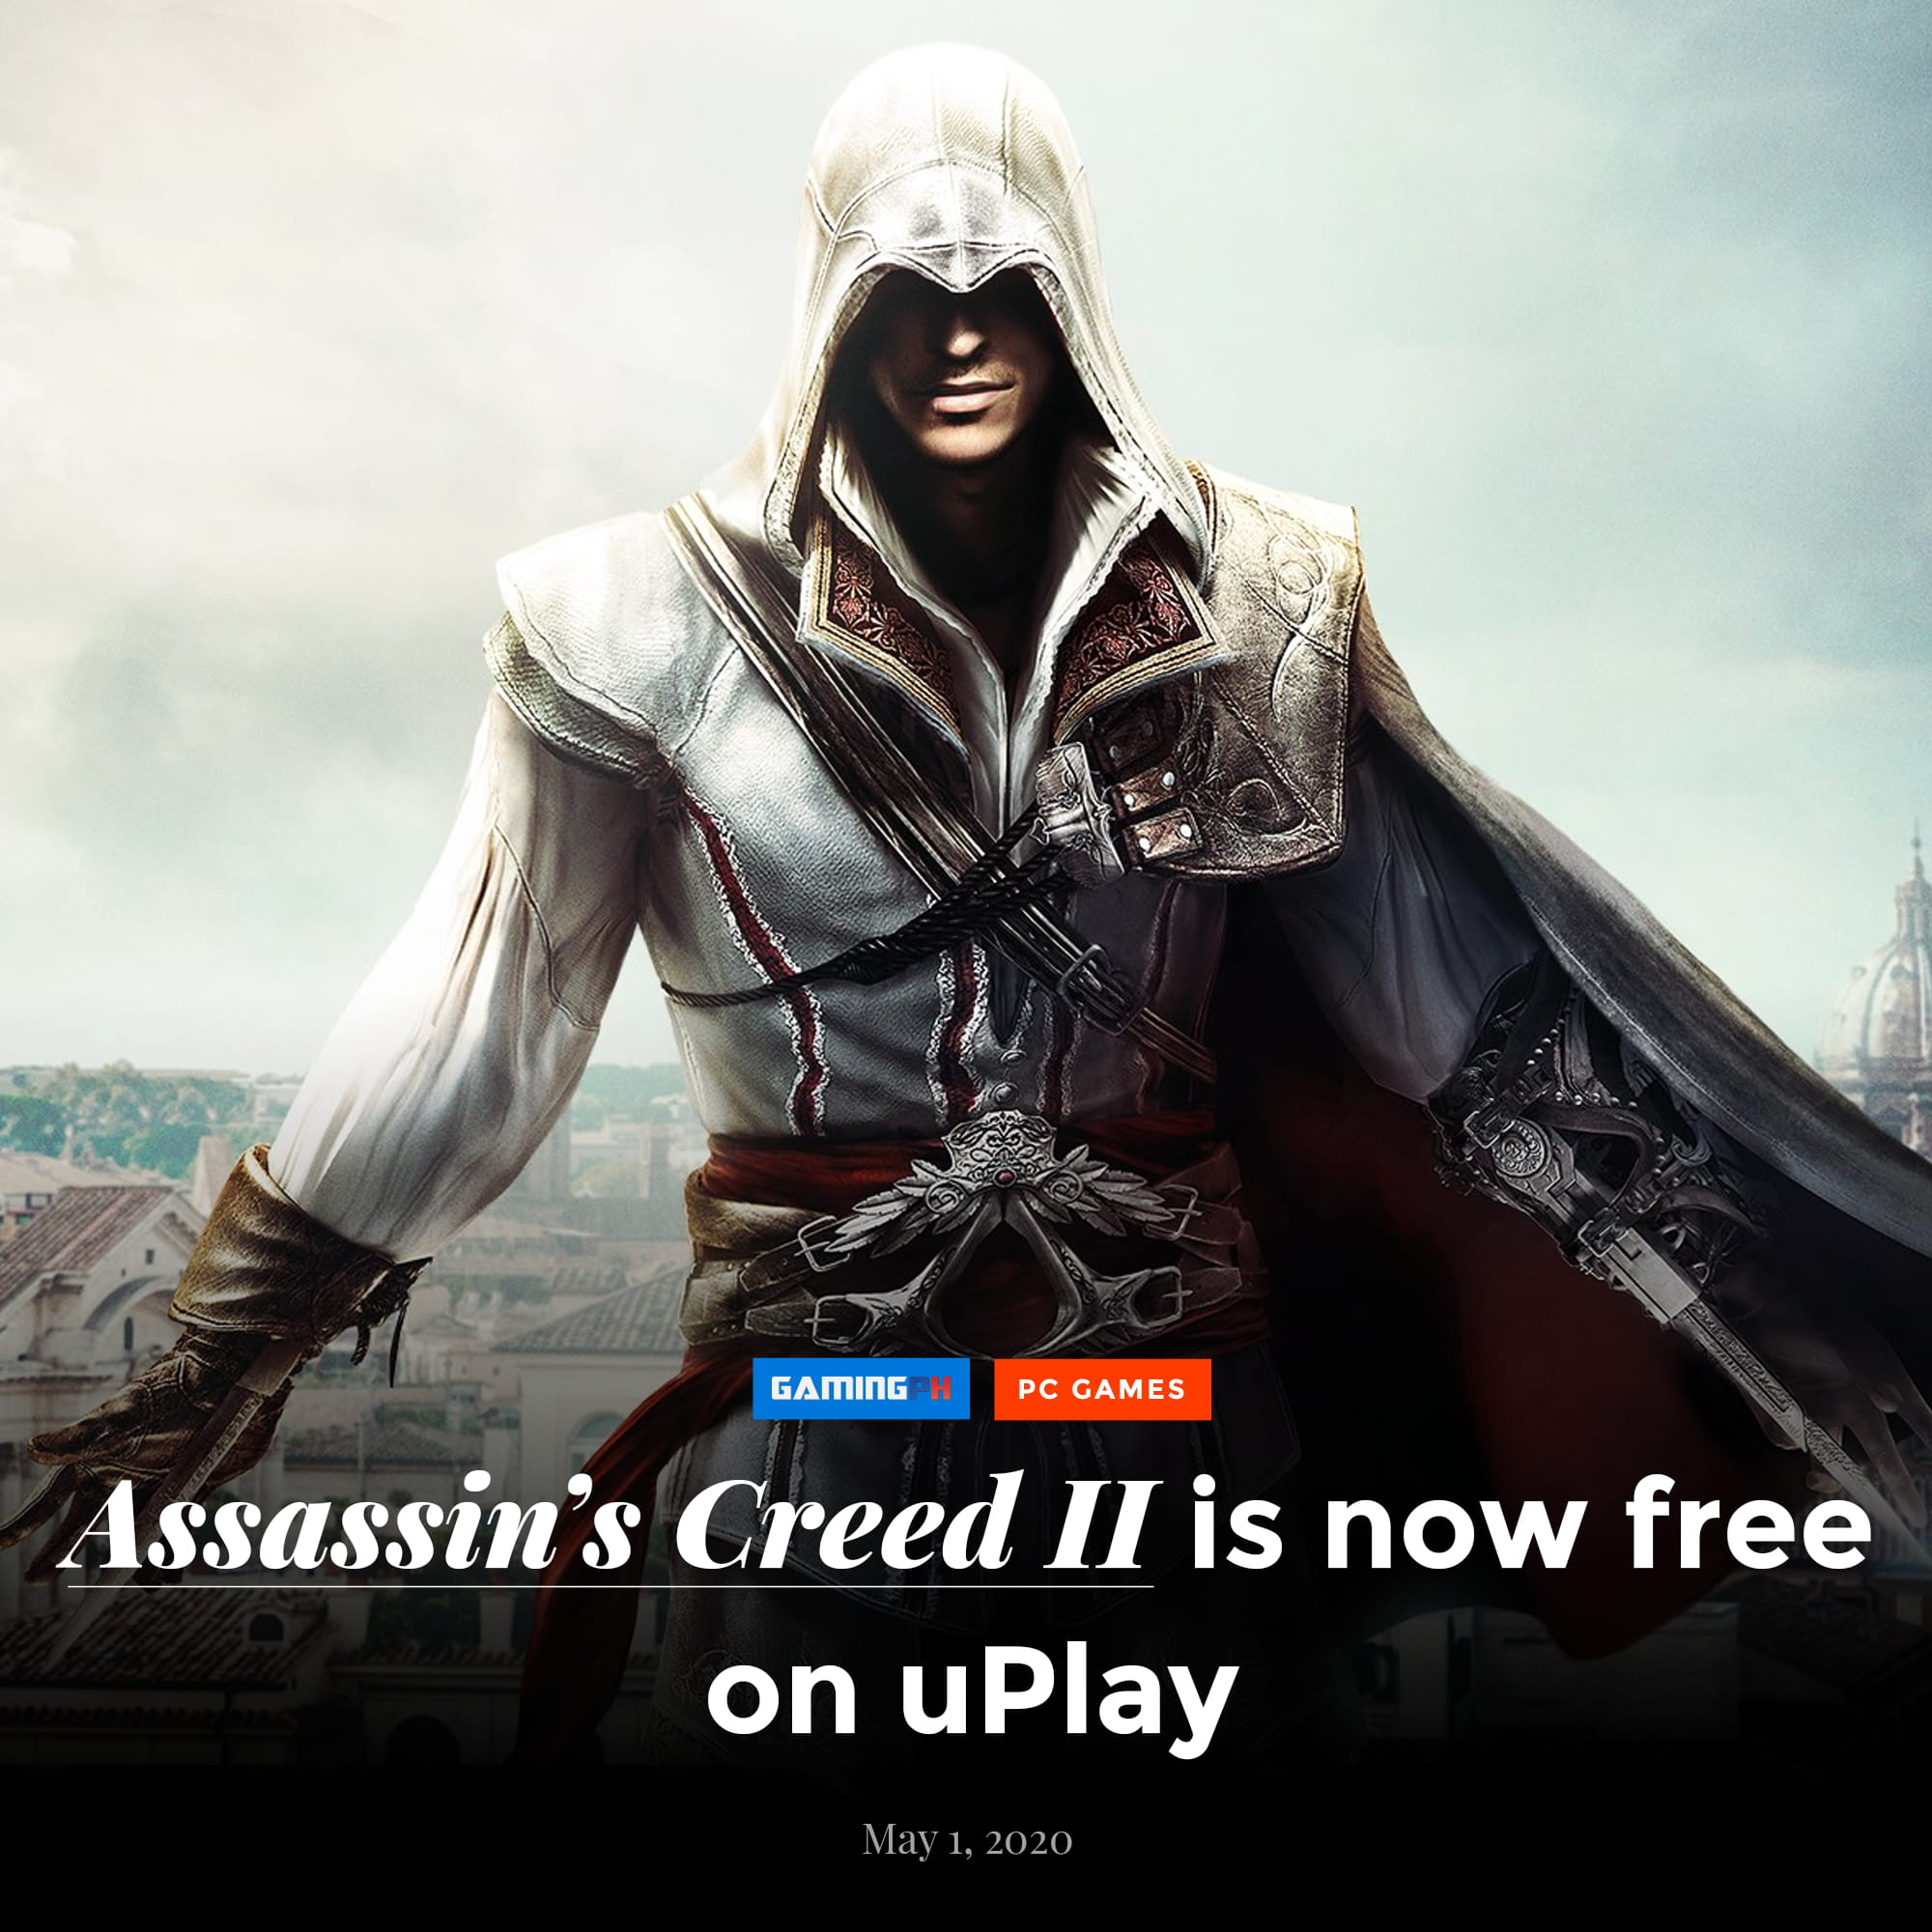 3 Games Are Free On Uplay Assassins Creed 2 Rayman Legends And